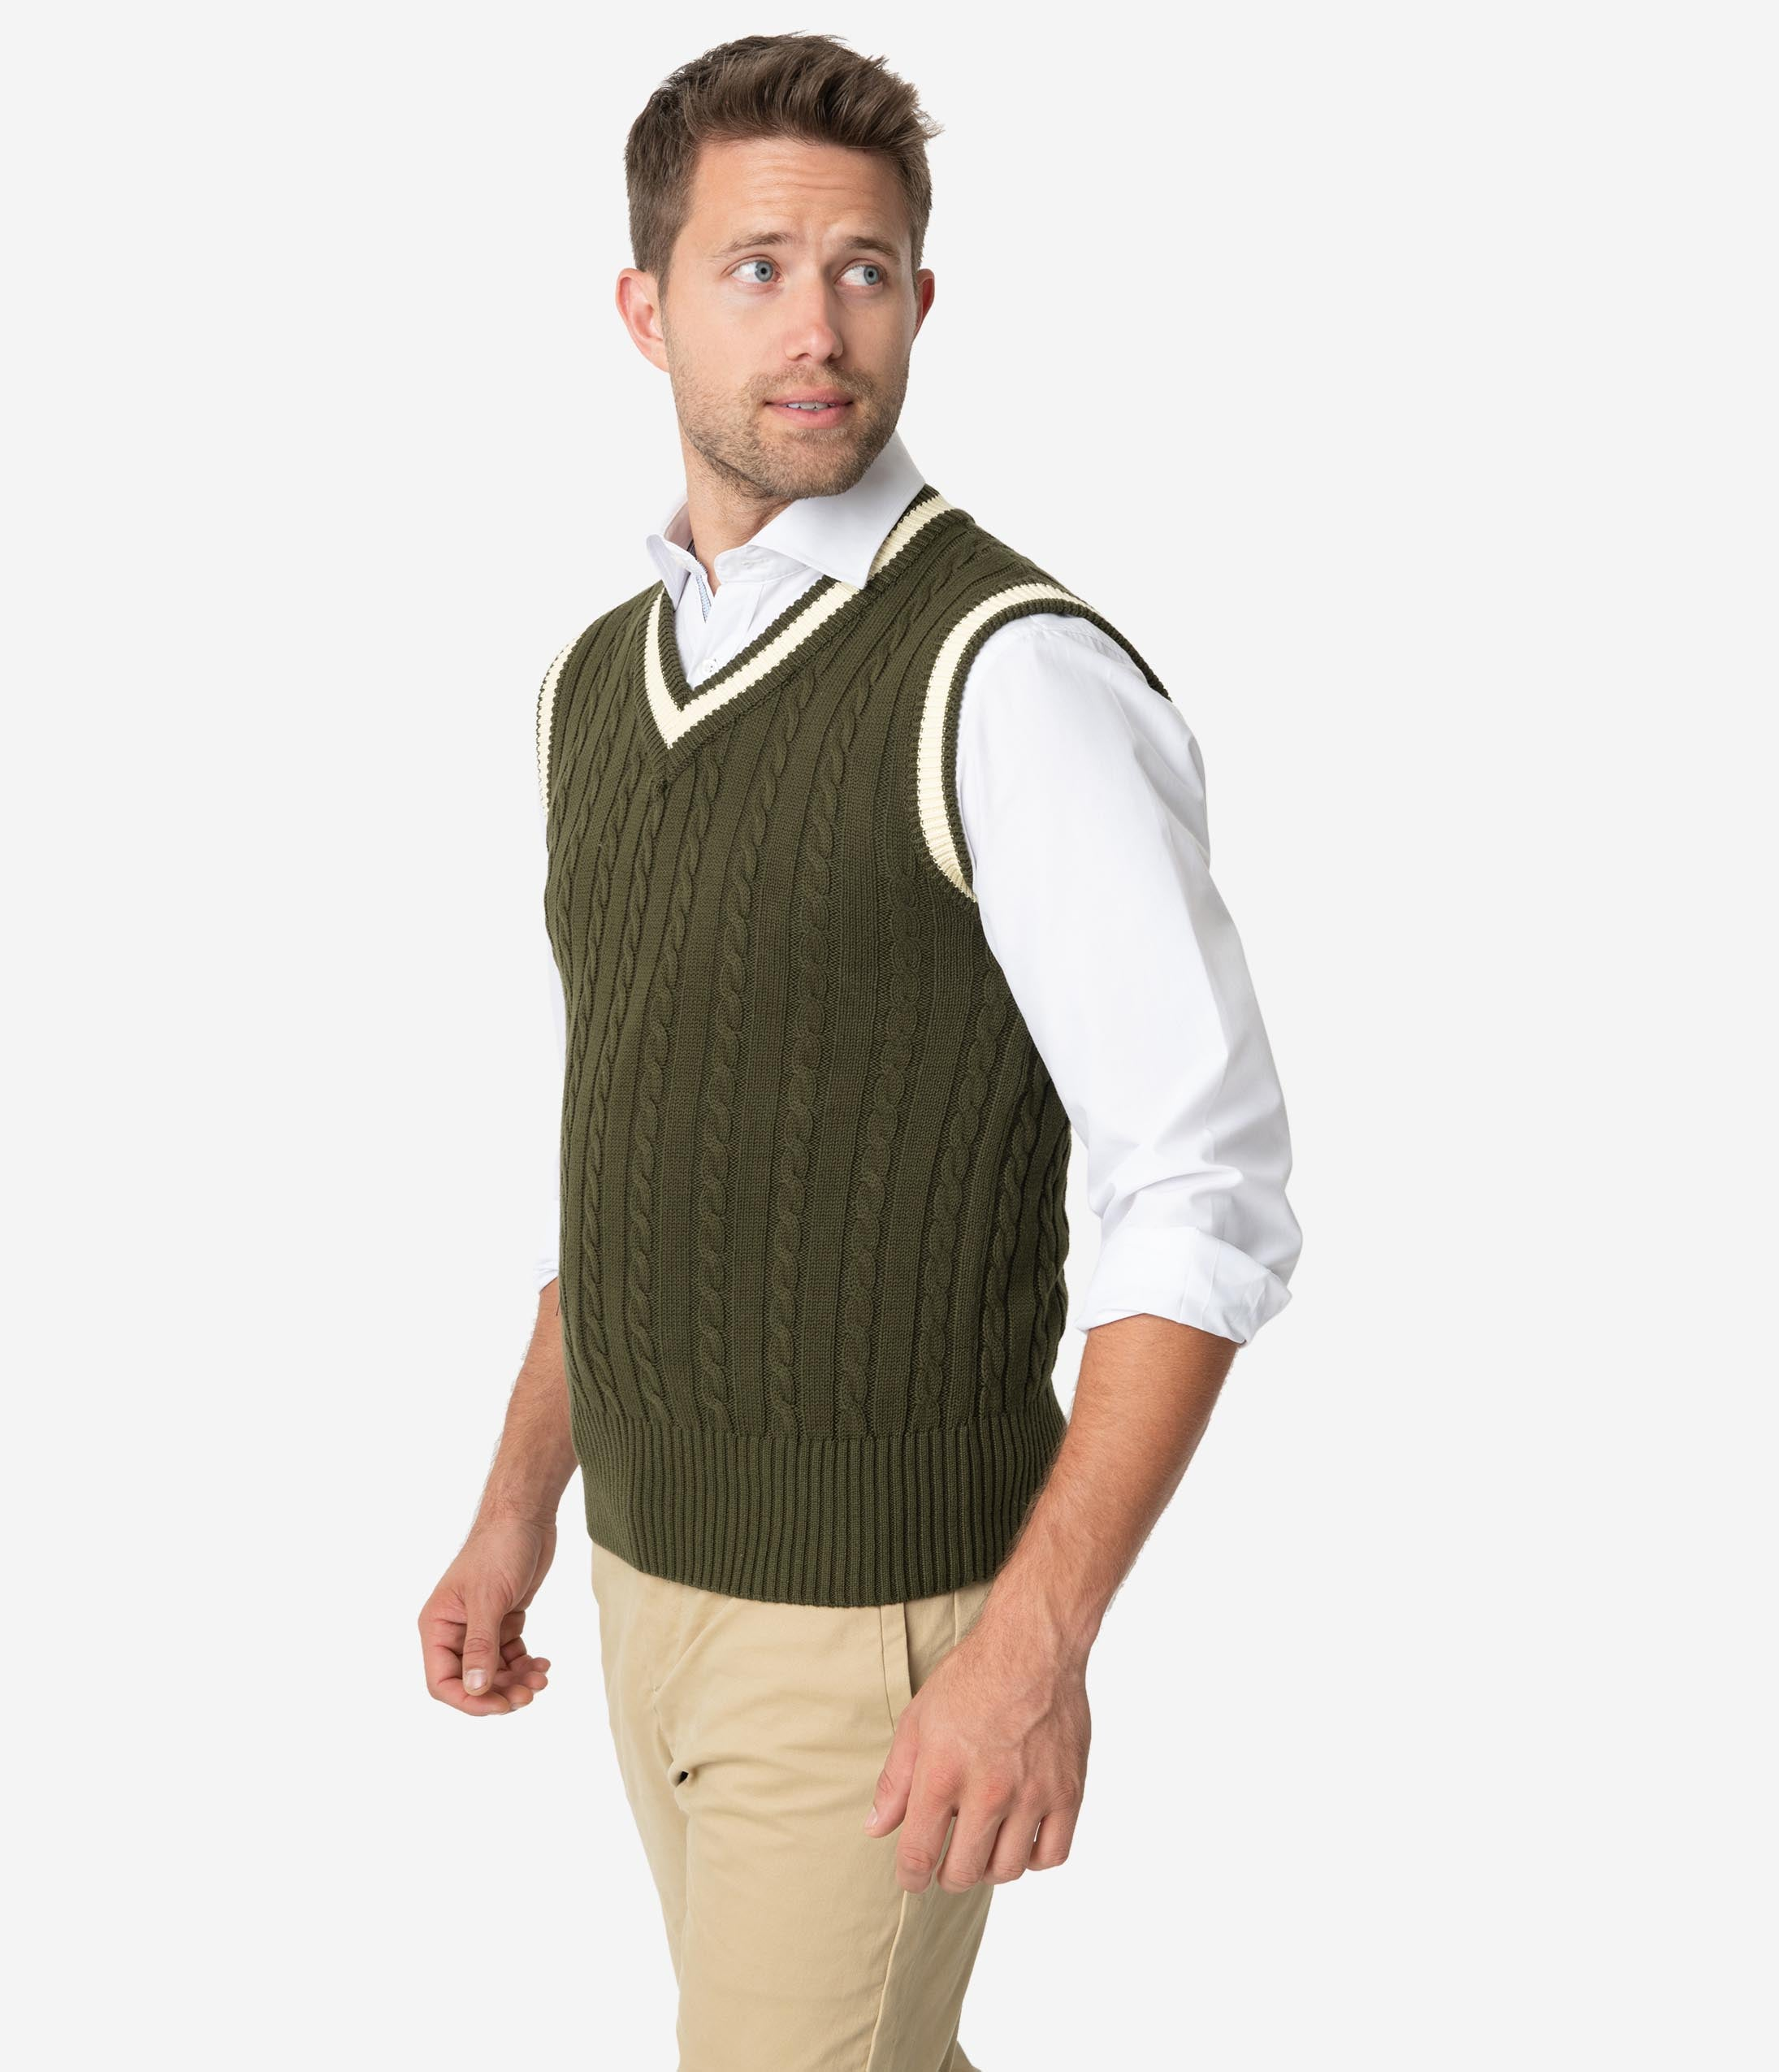 Men's Vintage Sweaters – 1920s to 1960s Retro Jumpers Collectif 1950S Olive Green Cable Knit Alex Mens Sweater Vest $48.00 AT vintagedancer.com